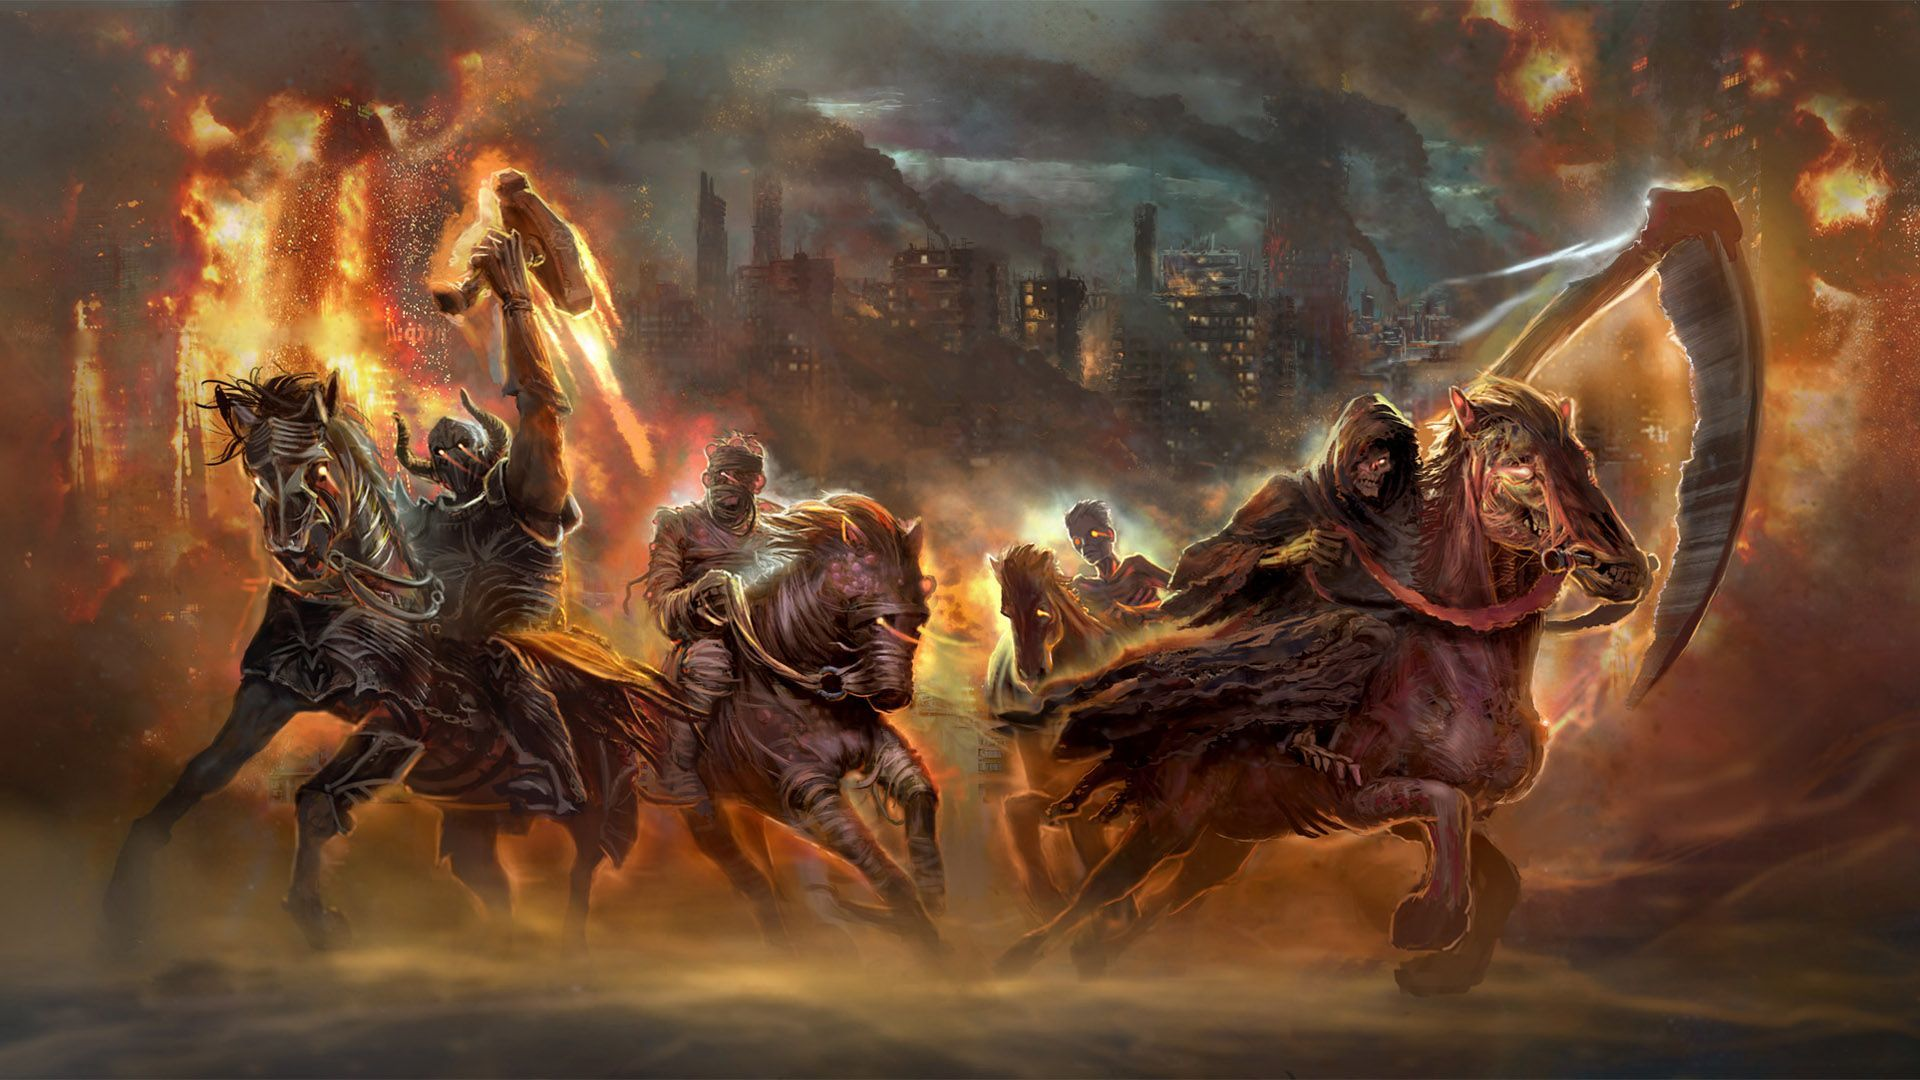 four horsemen of the apocalypse fantasy hd wallpaper 19201080 10292 1920x1080